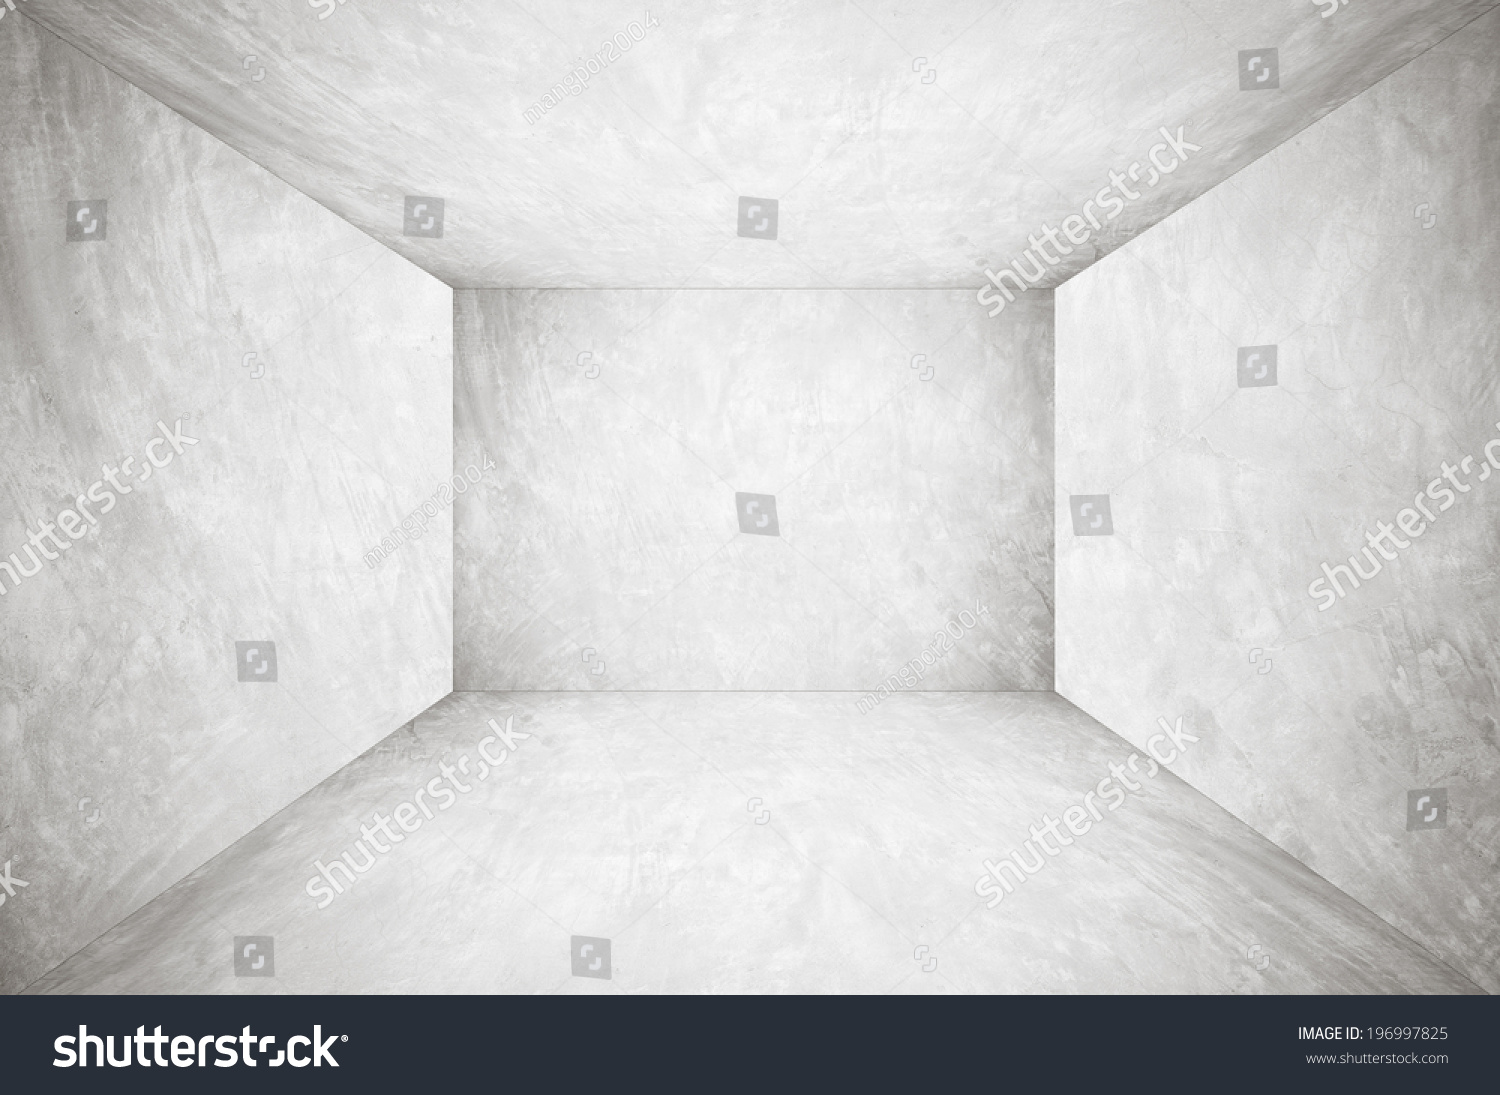 empty cement room perspective background template stock photo 196997825 shutterstock. Black Bedroom Furniture Sets. Home Design Ideas